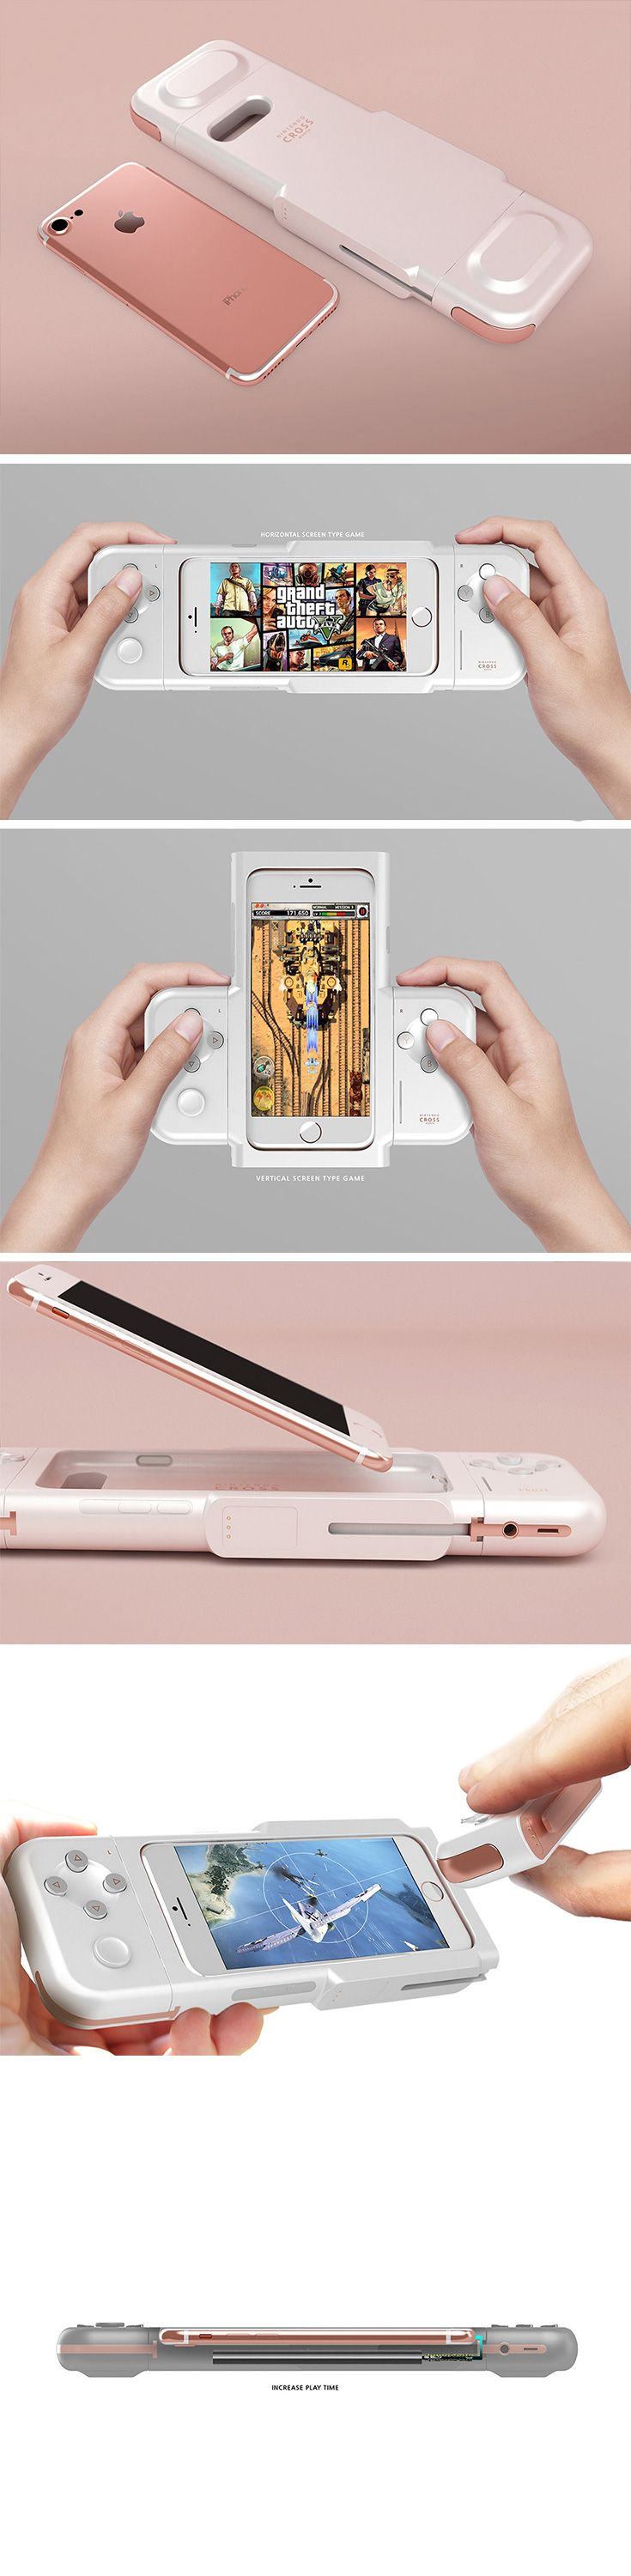 The Nintendo Cross transforms your iOS gaming experience with a full set of console-style controls. This mobile gaming powerhouse feature directional controls, 4 action buttons and a larger trigger button. At the heart of the design, however, is an innova